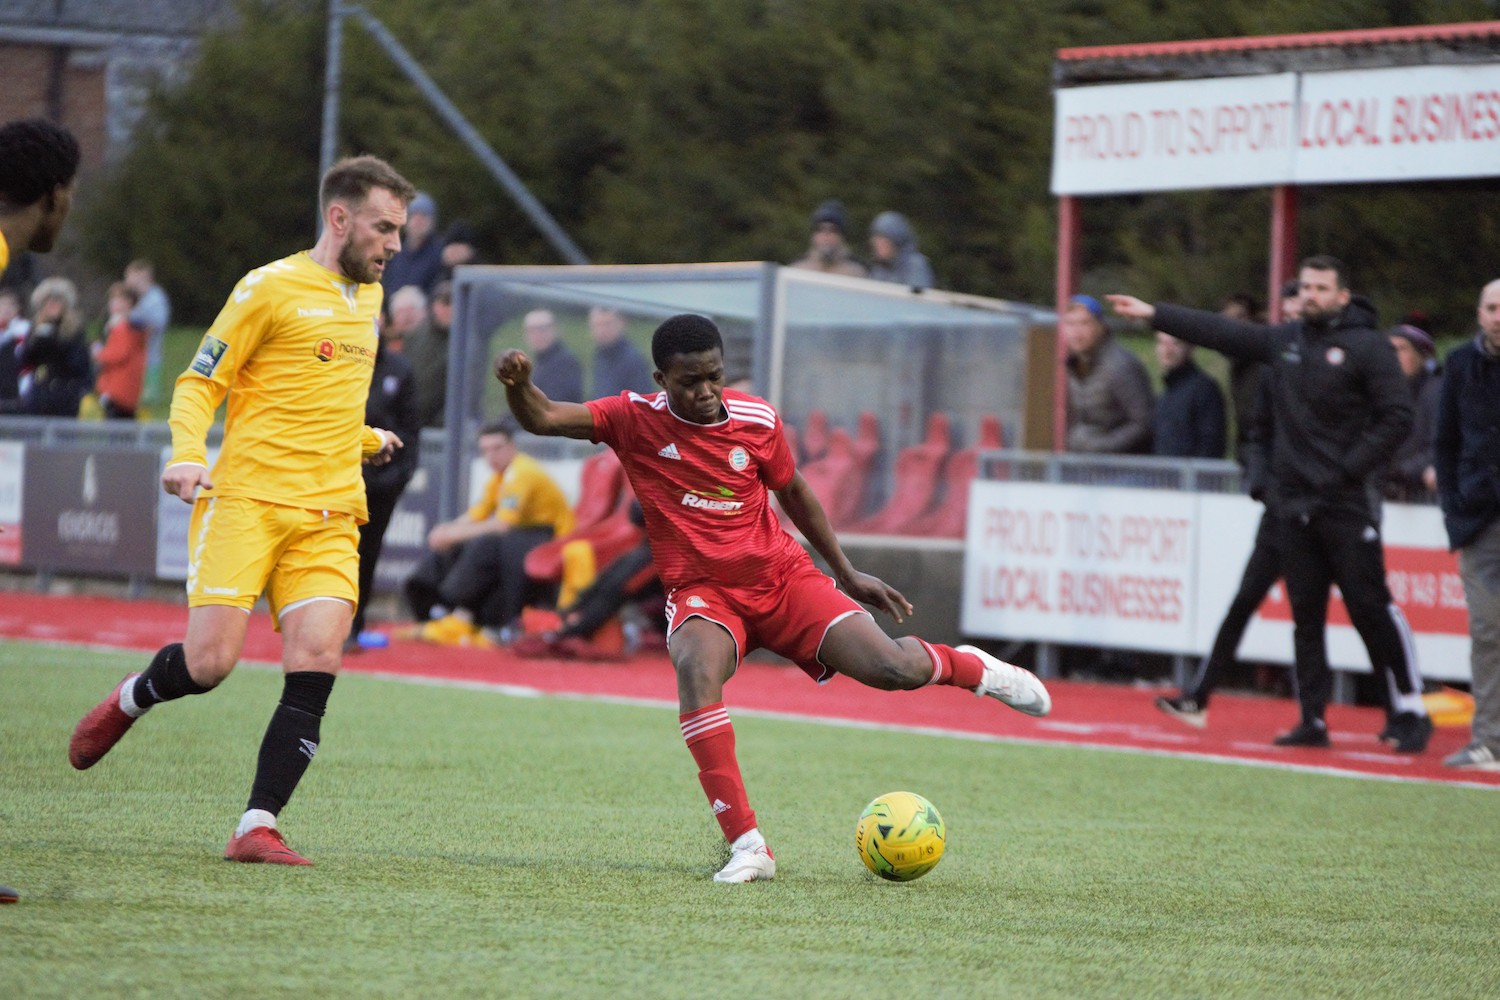 Read the full article - HIGHLIGHTS: Worthing 1-1 Potters Bar [H] – League